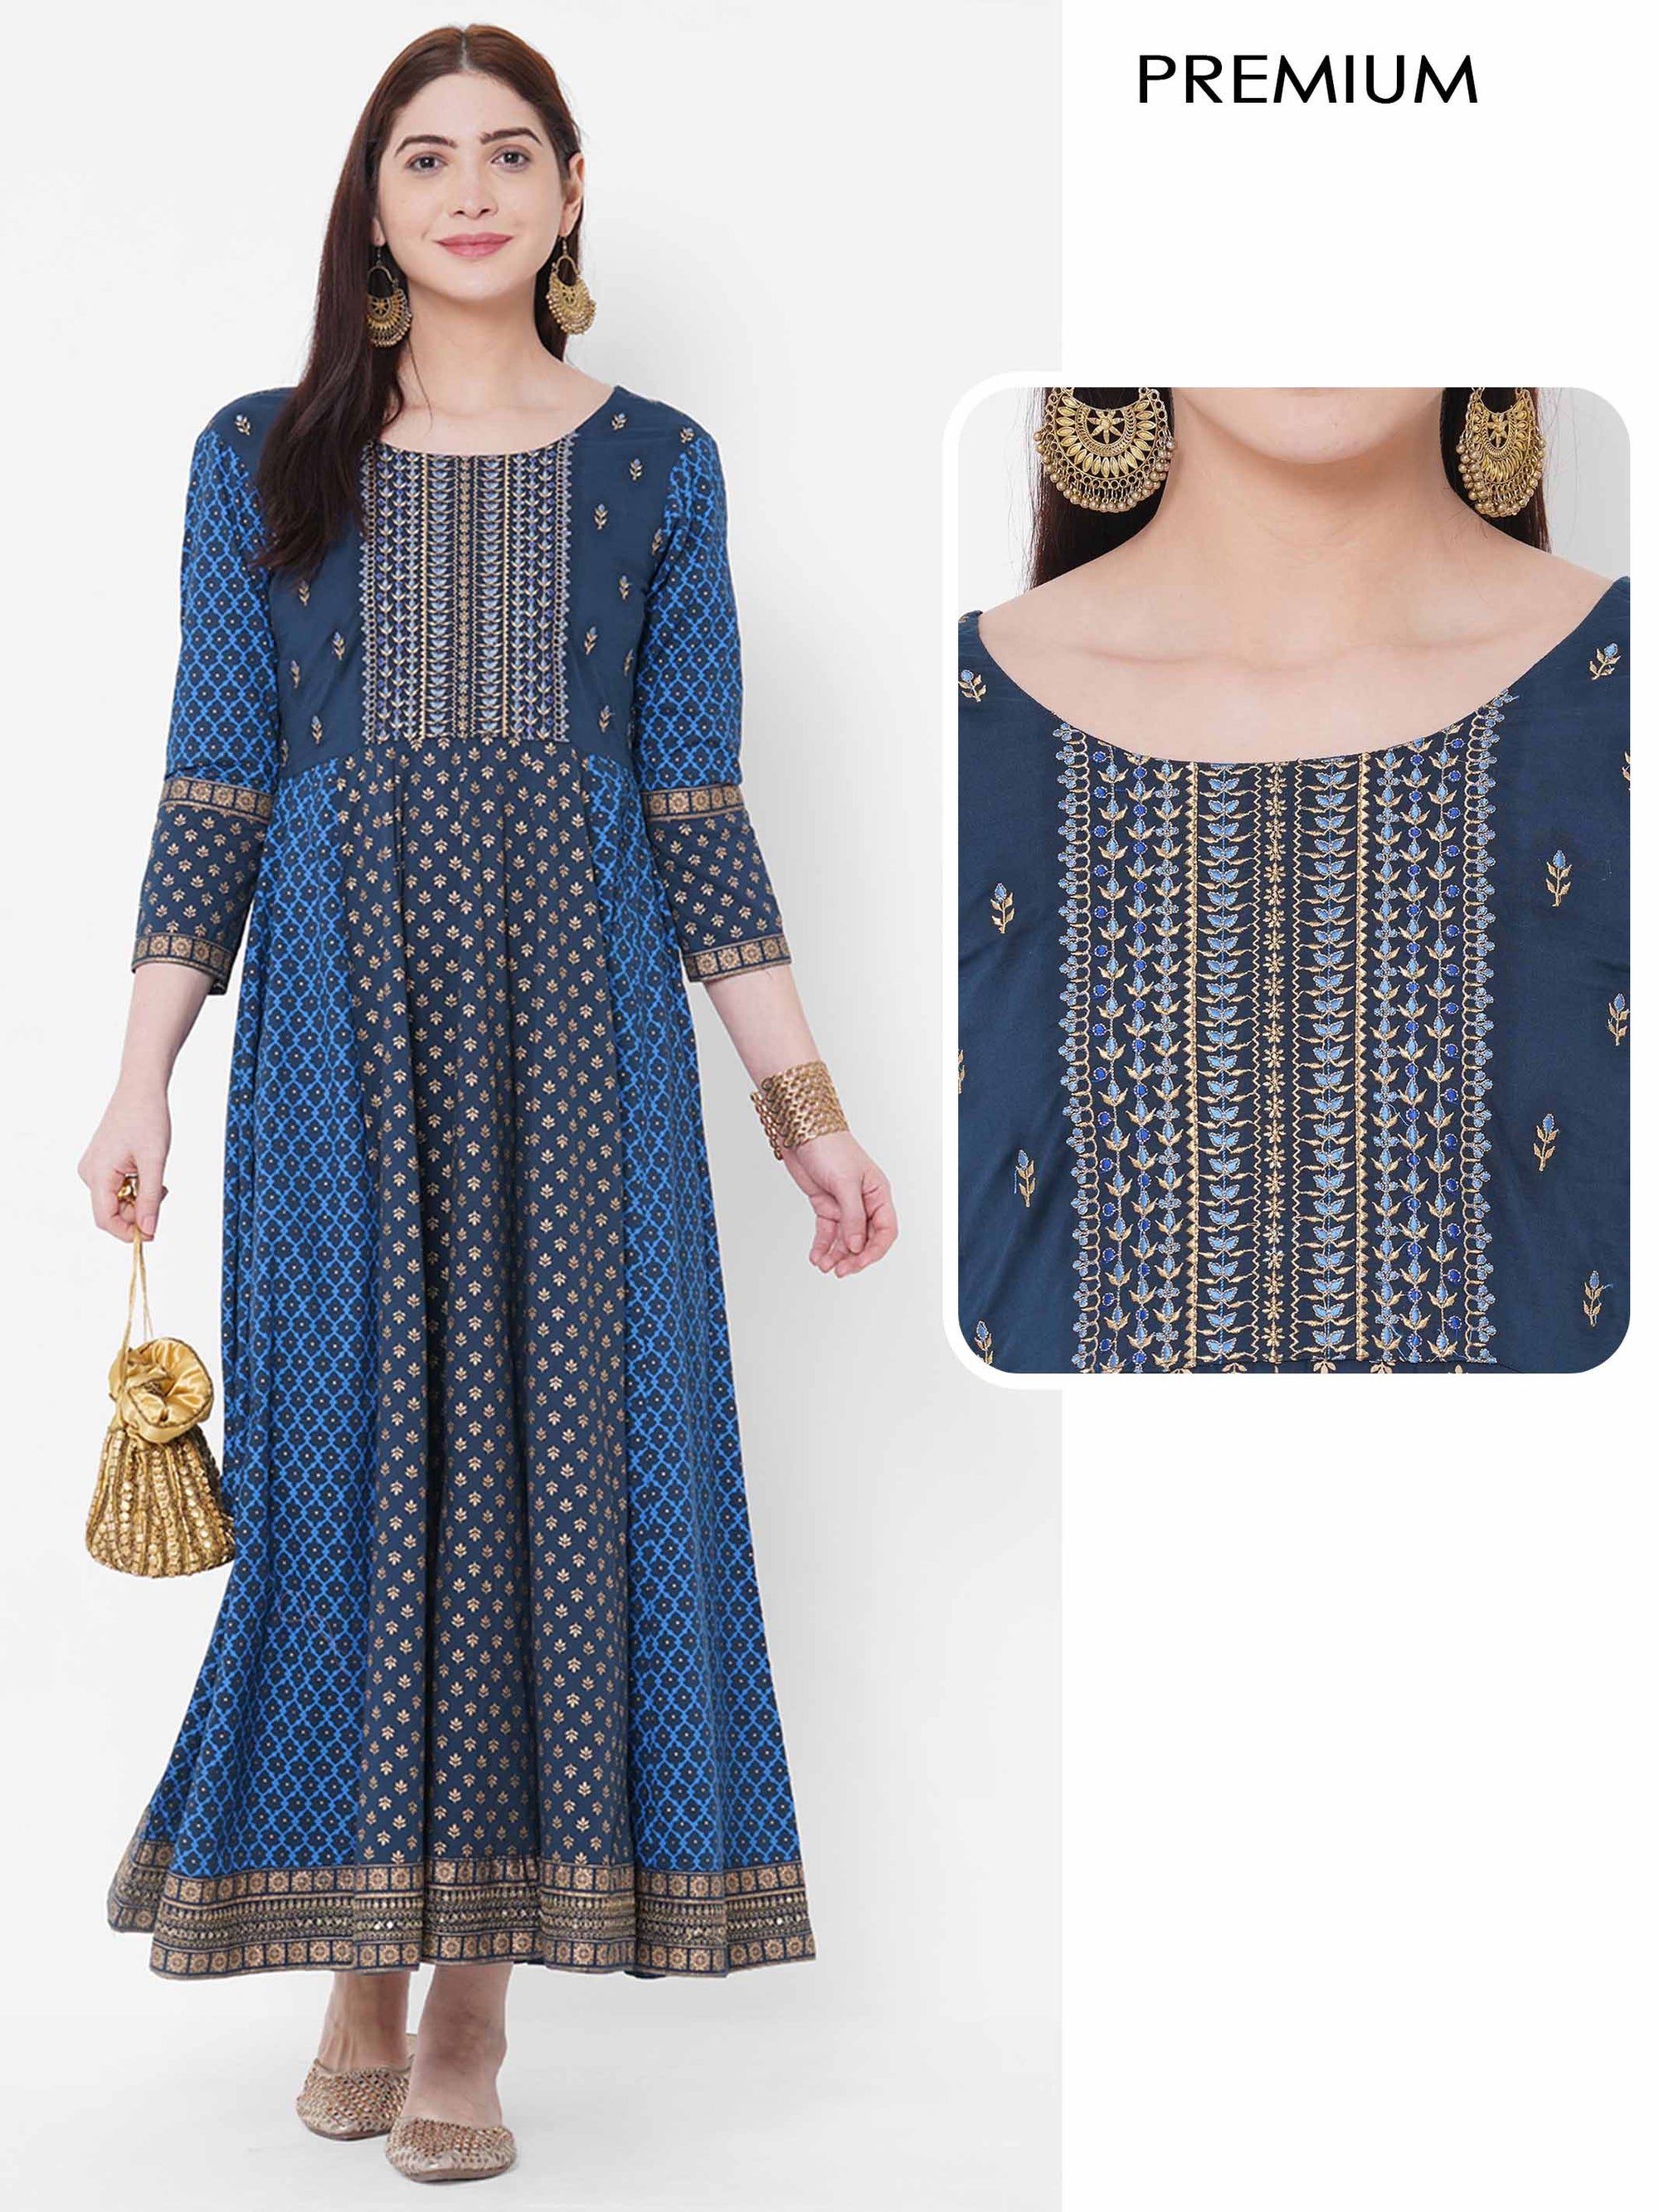 Ethnic Mix Printed & Embroidered Paneled Dress - Navy Blue